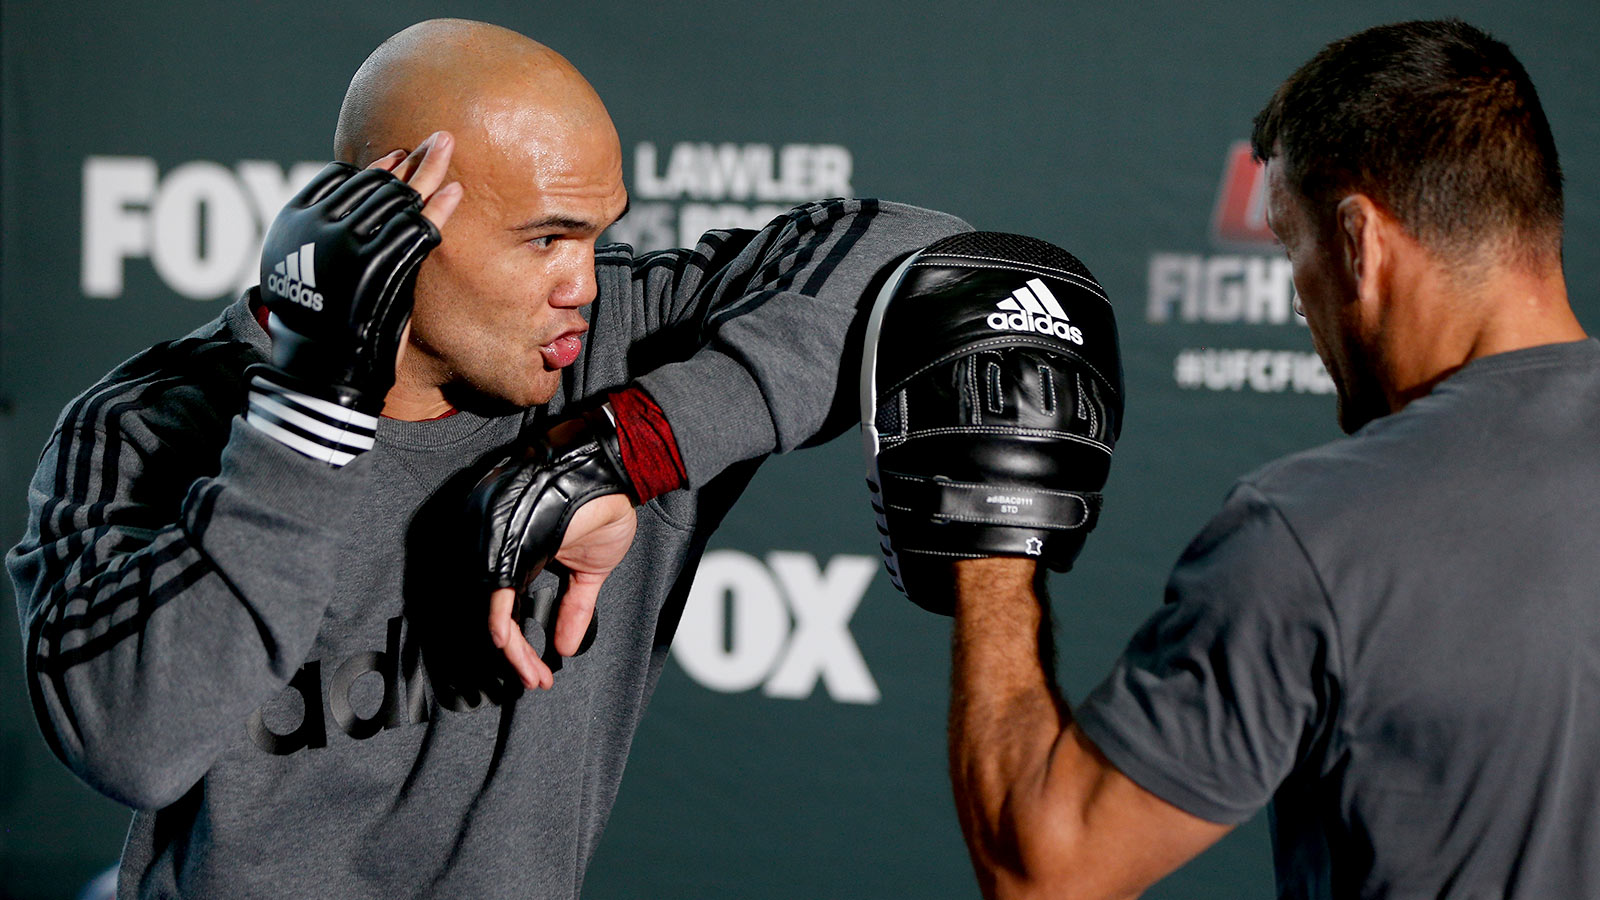 072514-UFC-Robbie-Lawler-holds-an-open-training-session-for-media-PI